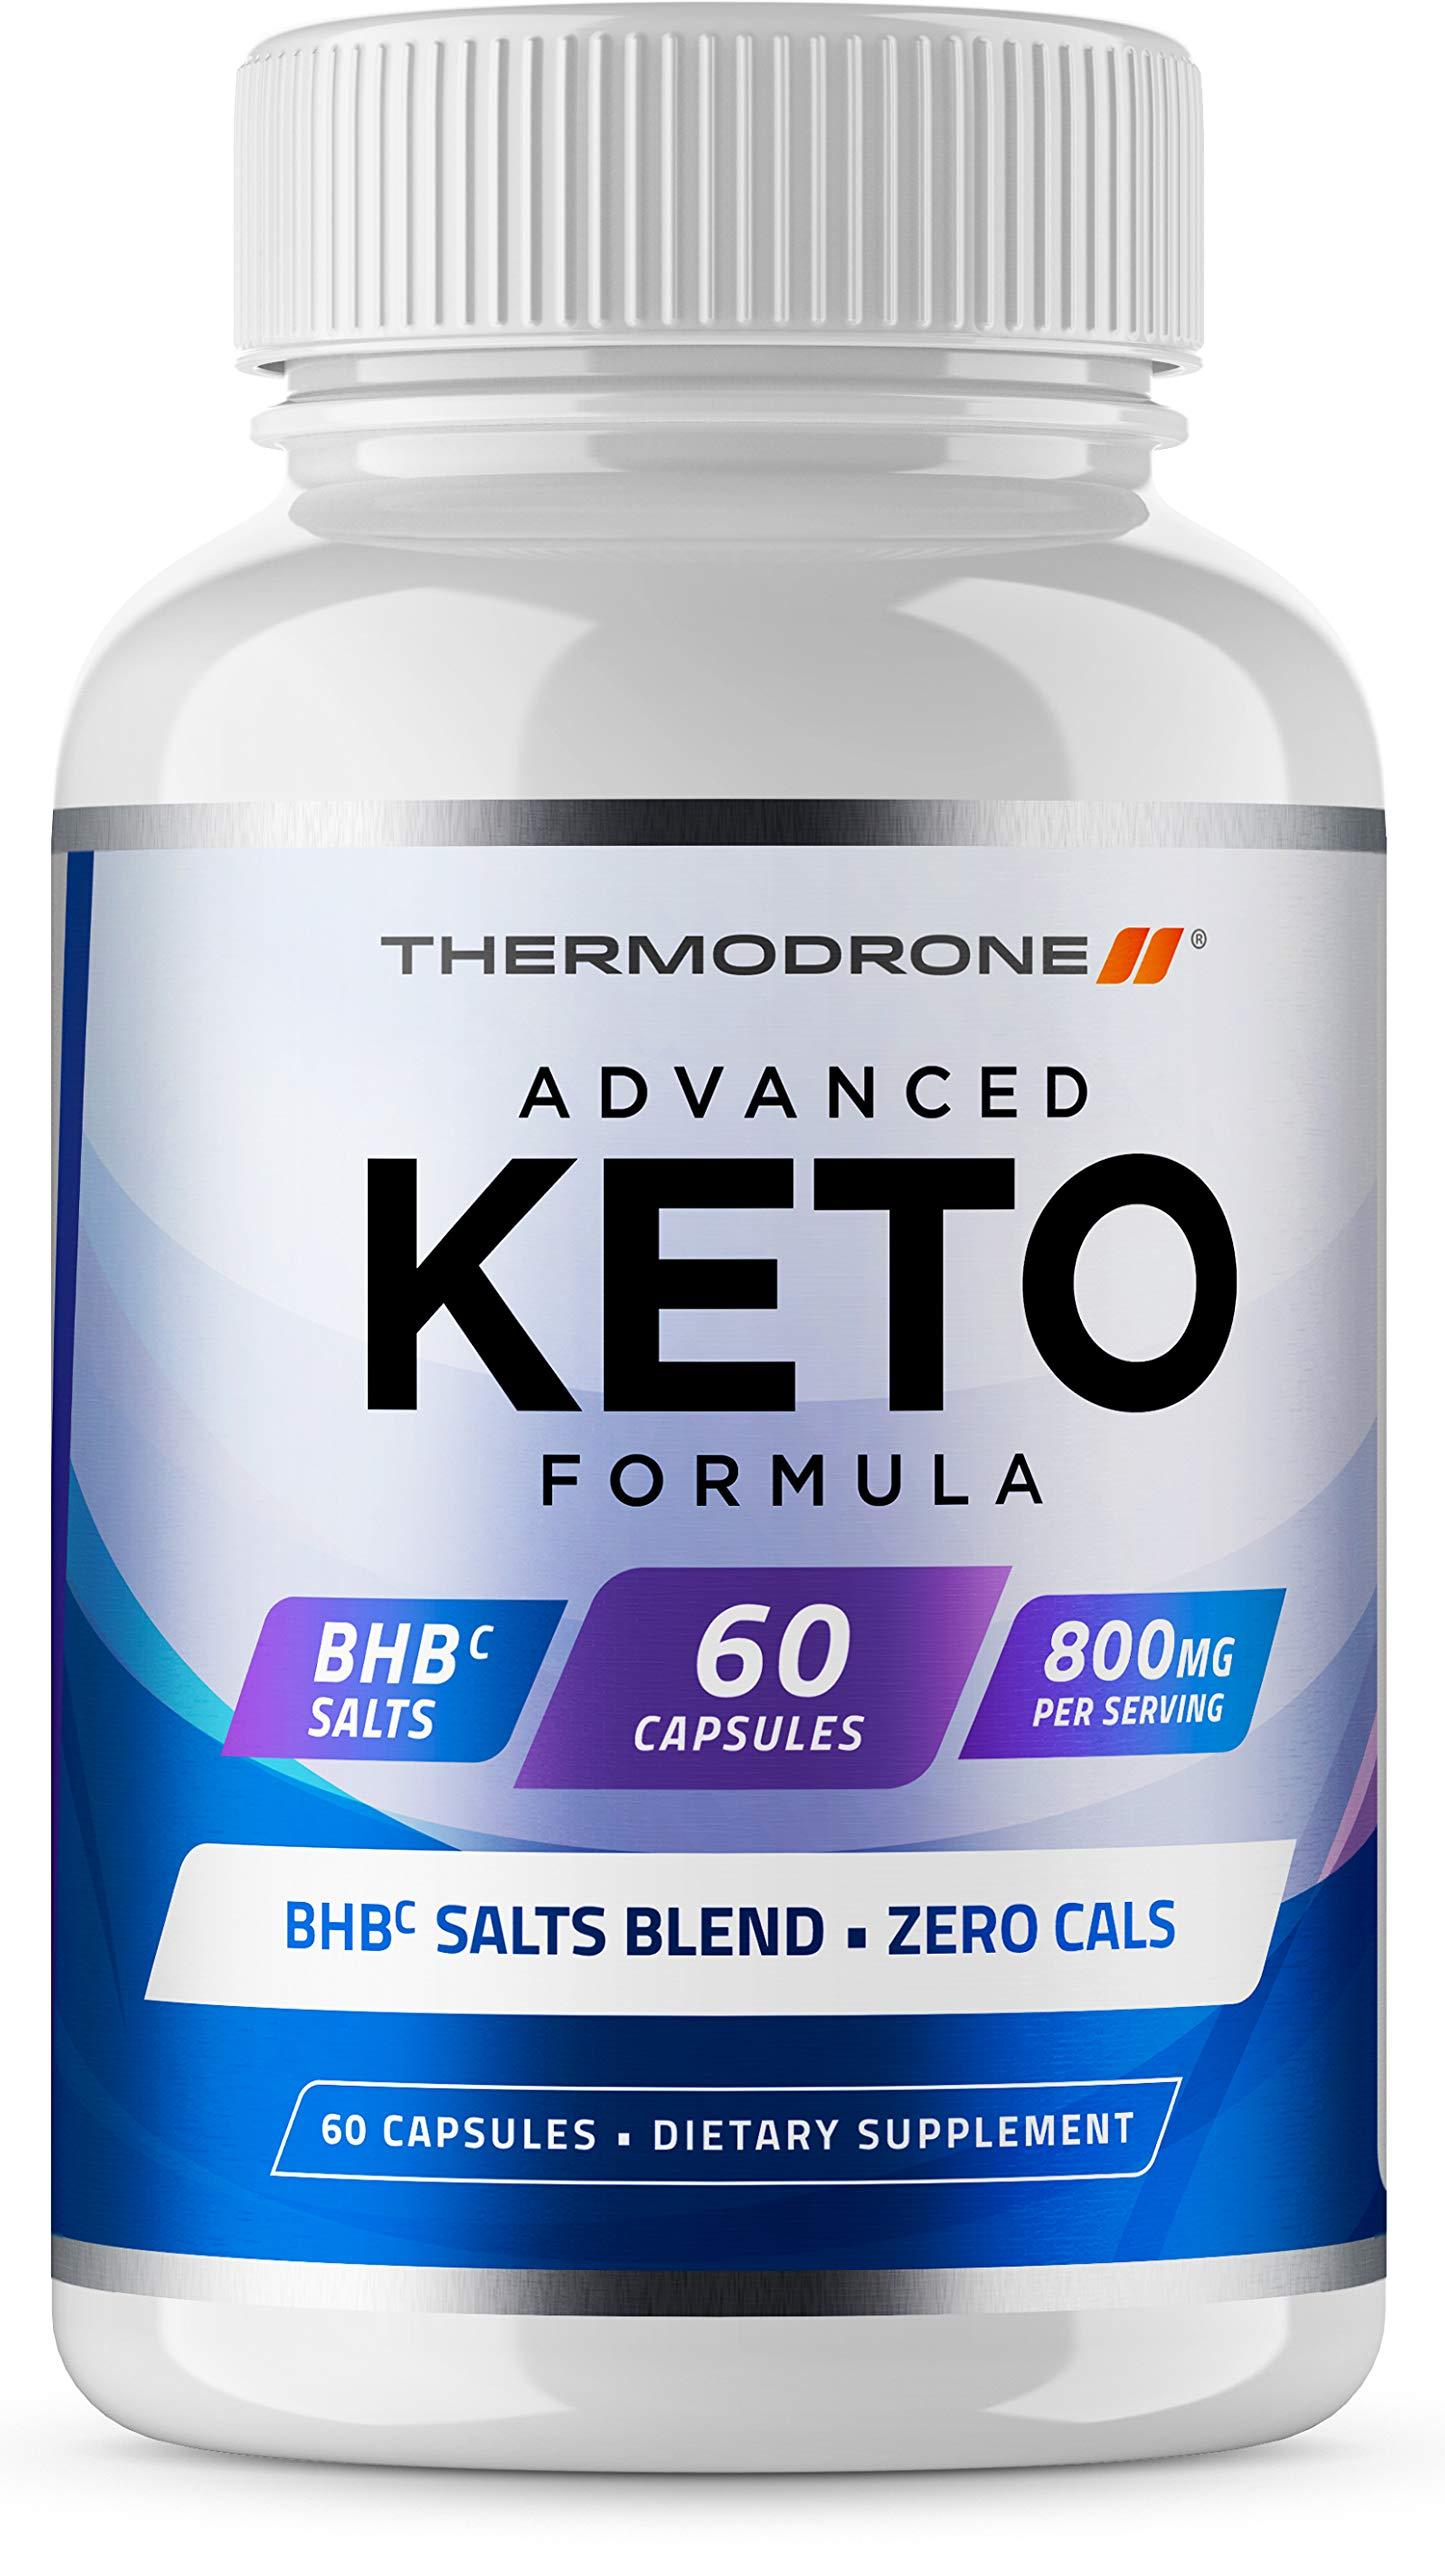 Keto Diet Weight Loss Pills - 60 Premium Diet Pills That Work for Women and Men - BHB Exogenous Ketones - Perfect Keto Diet for Beginners - Fat Burner Pills Made in The USA